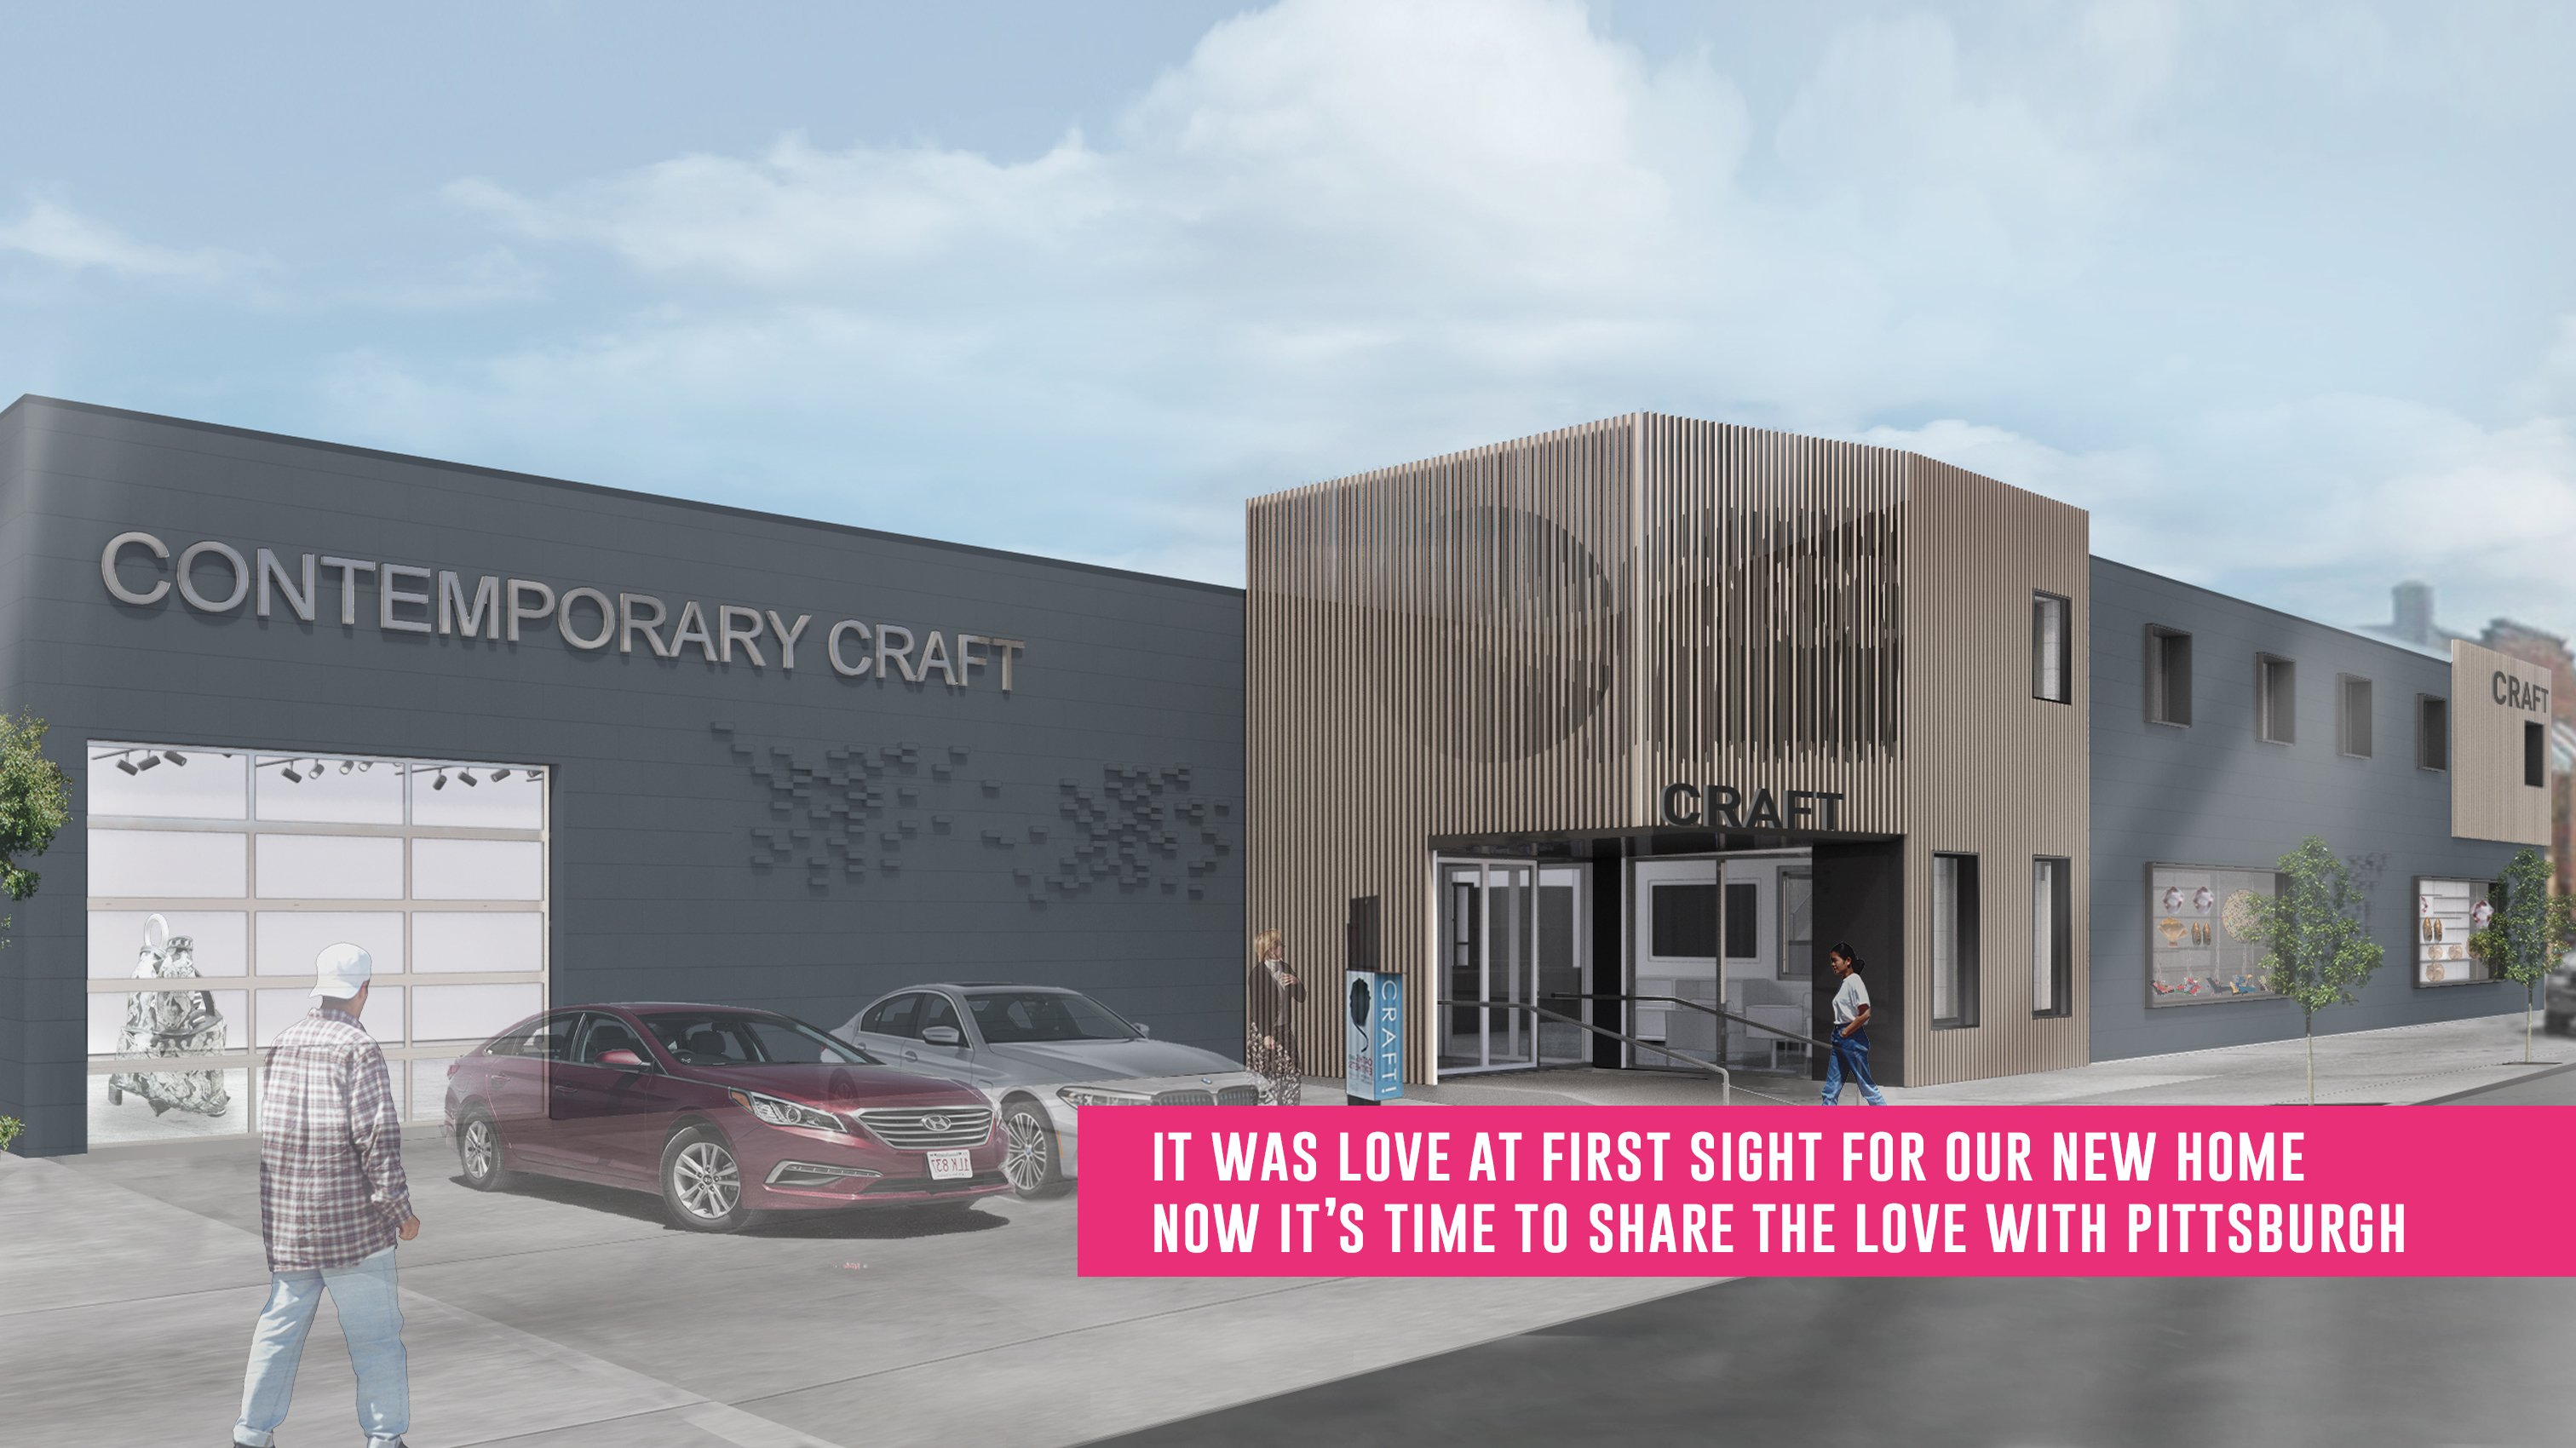 Contemporary Craft's new home